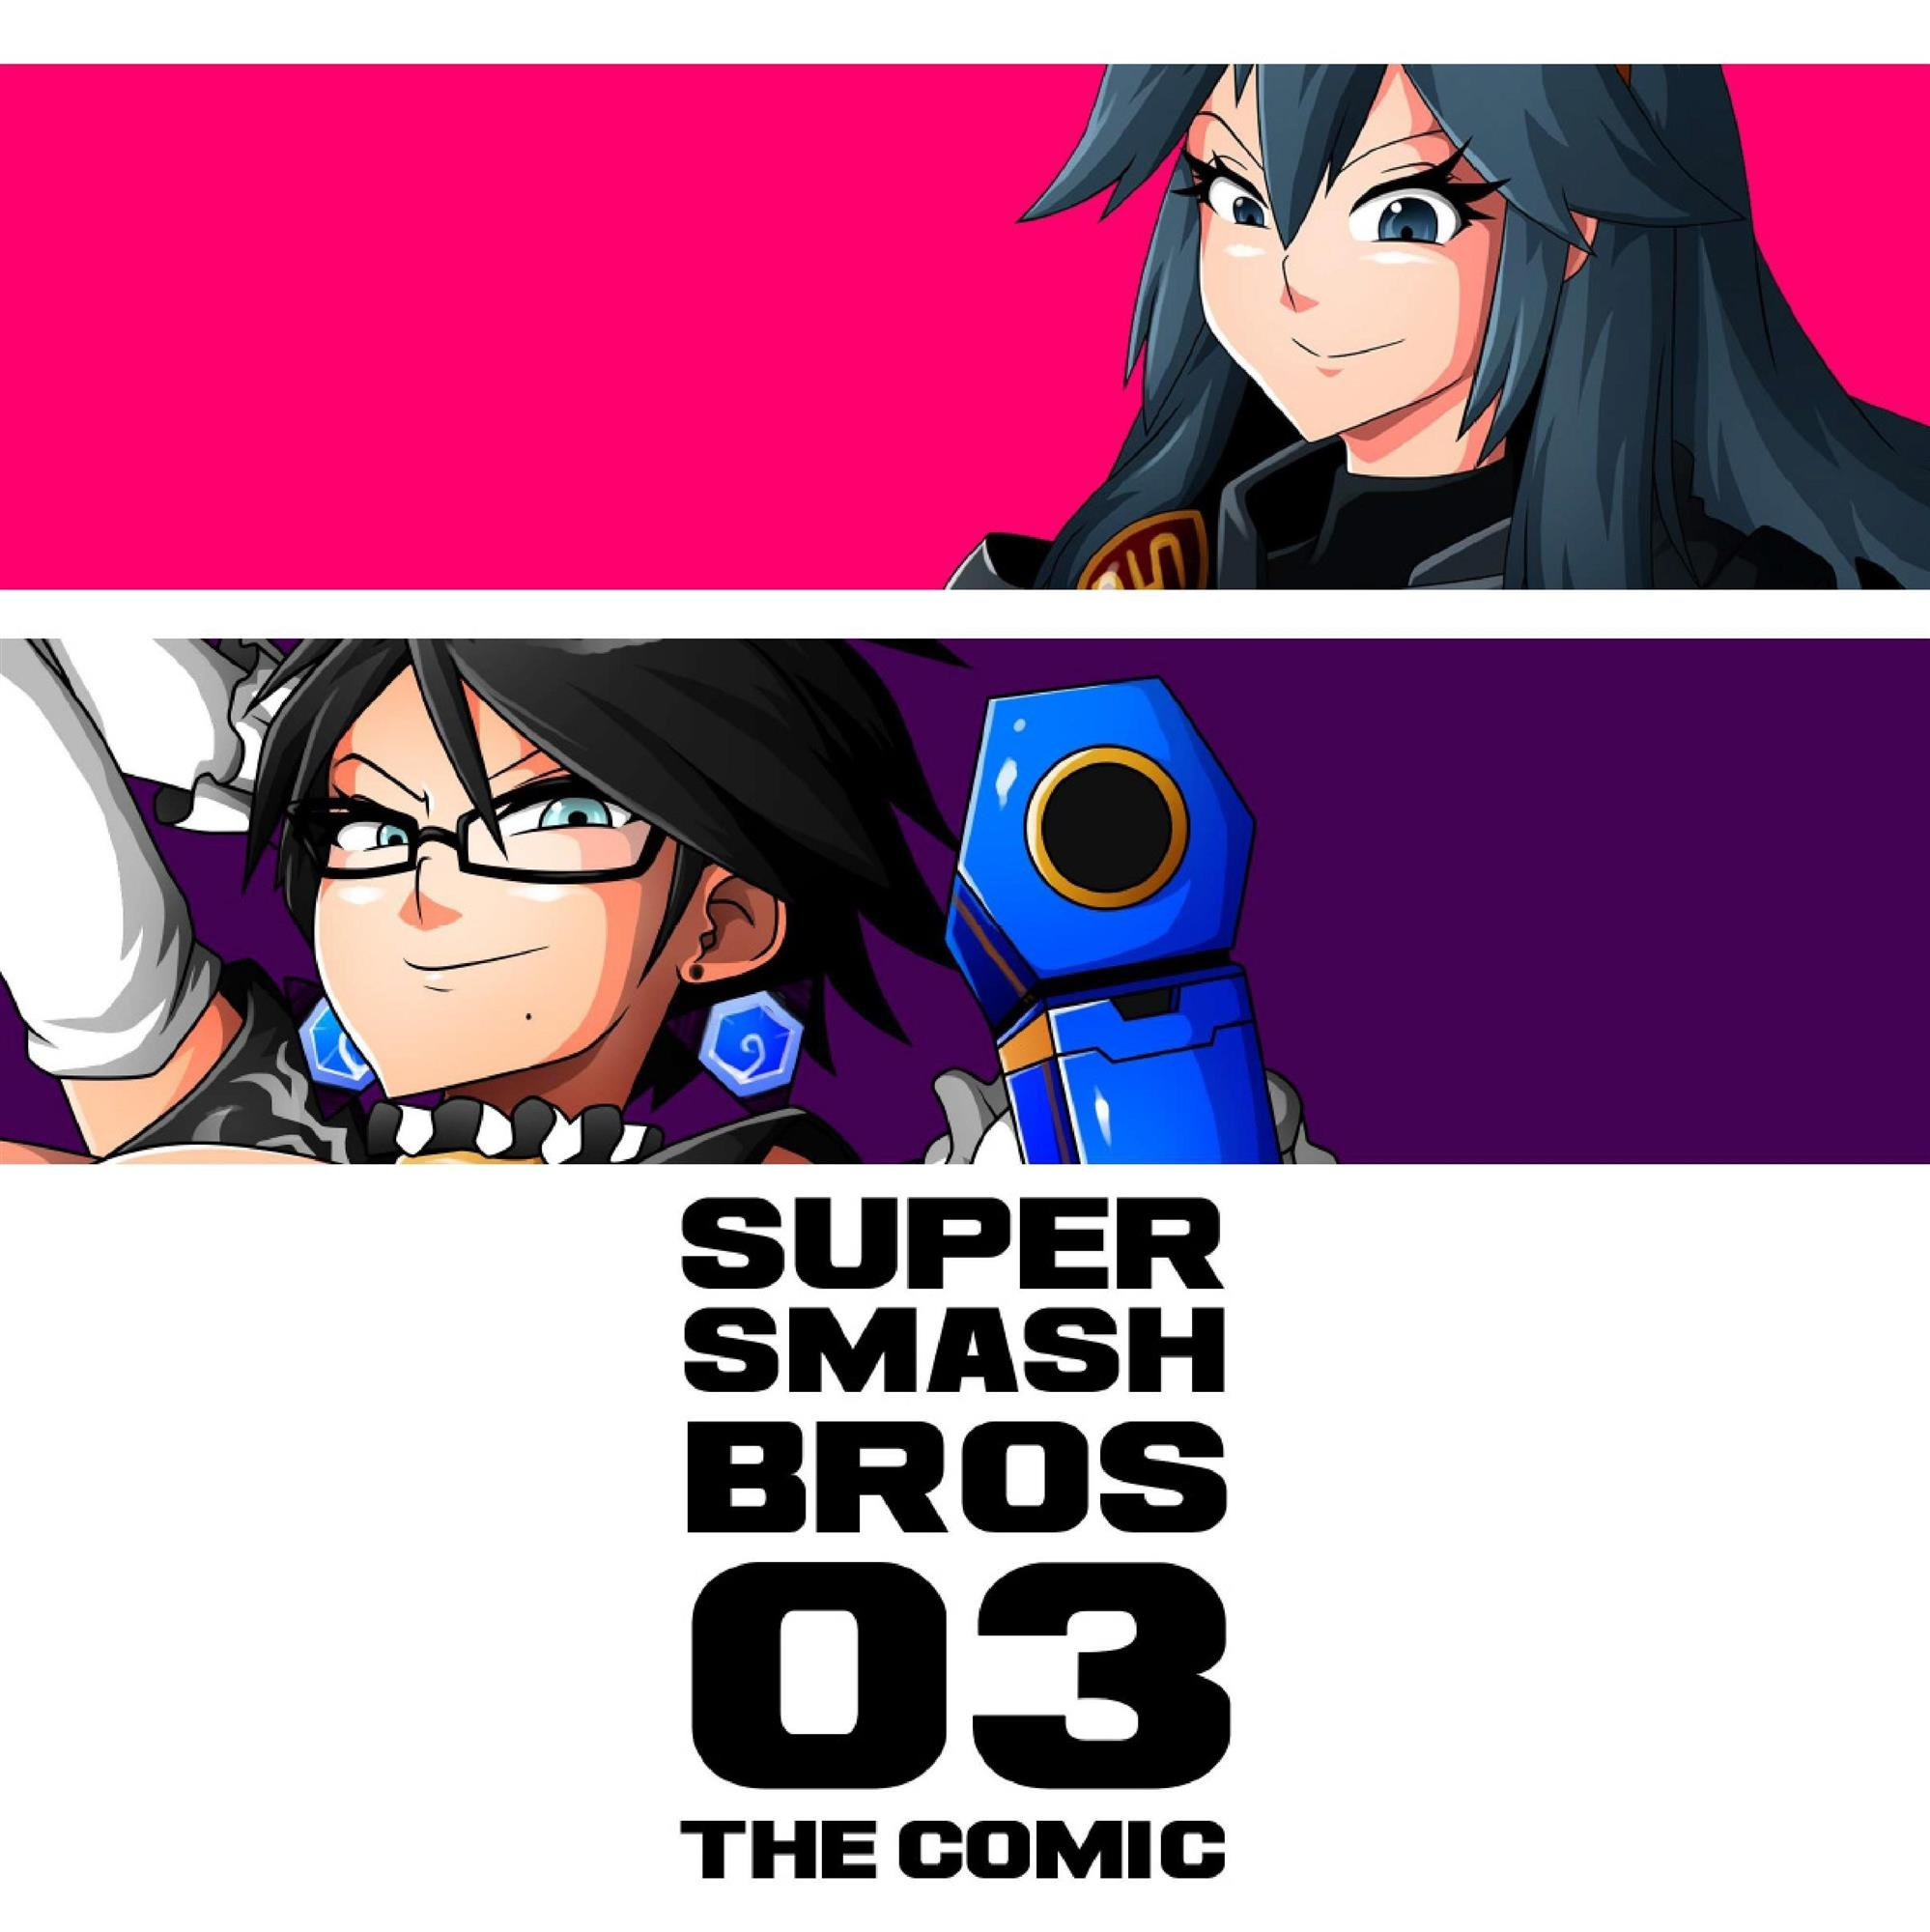 Futanari Bayonetta Lucina Samus Palutena Zelda Wii Fit Trainer and Princess Peach Rosalina fucking each other Nintendo